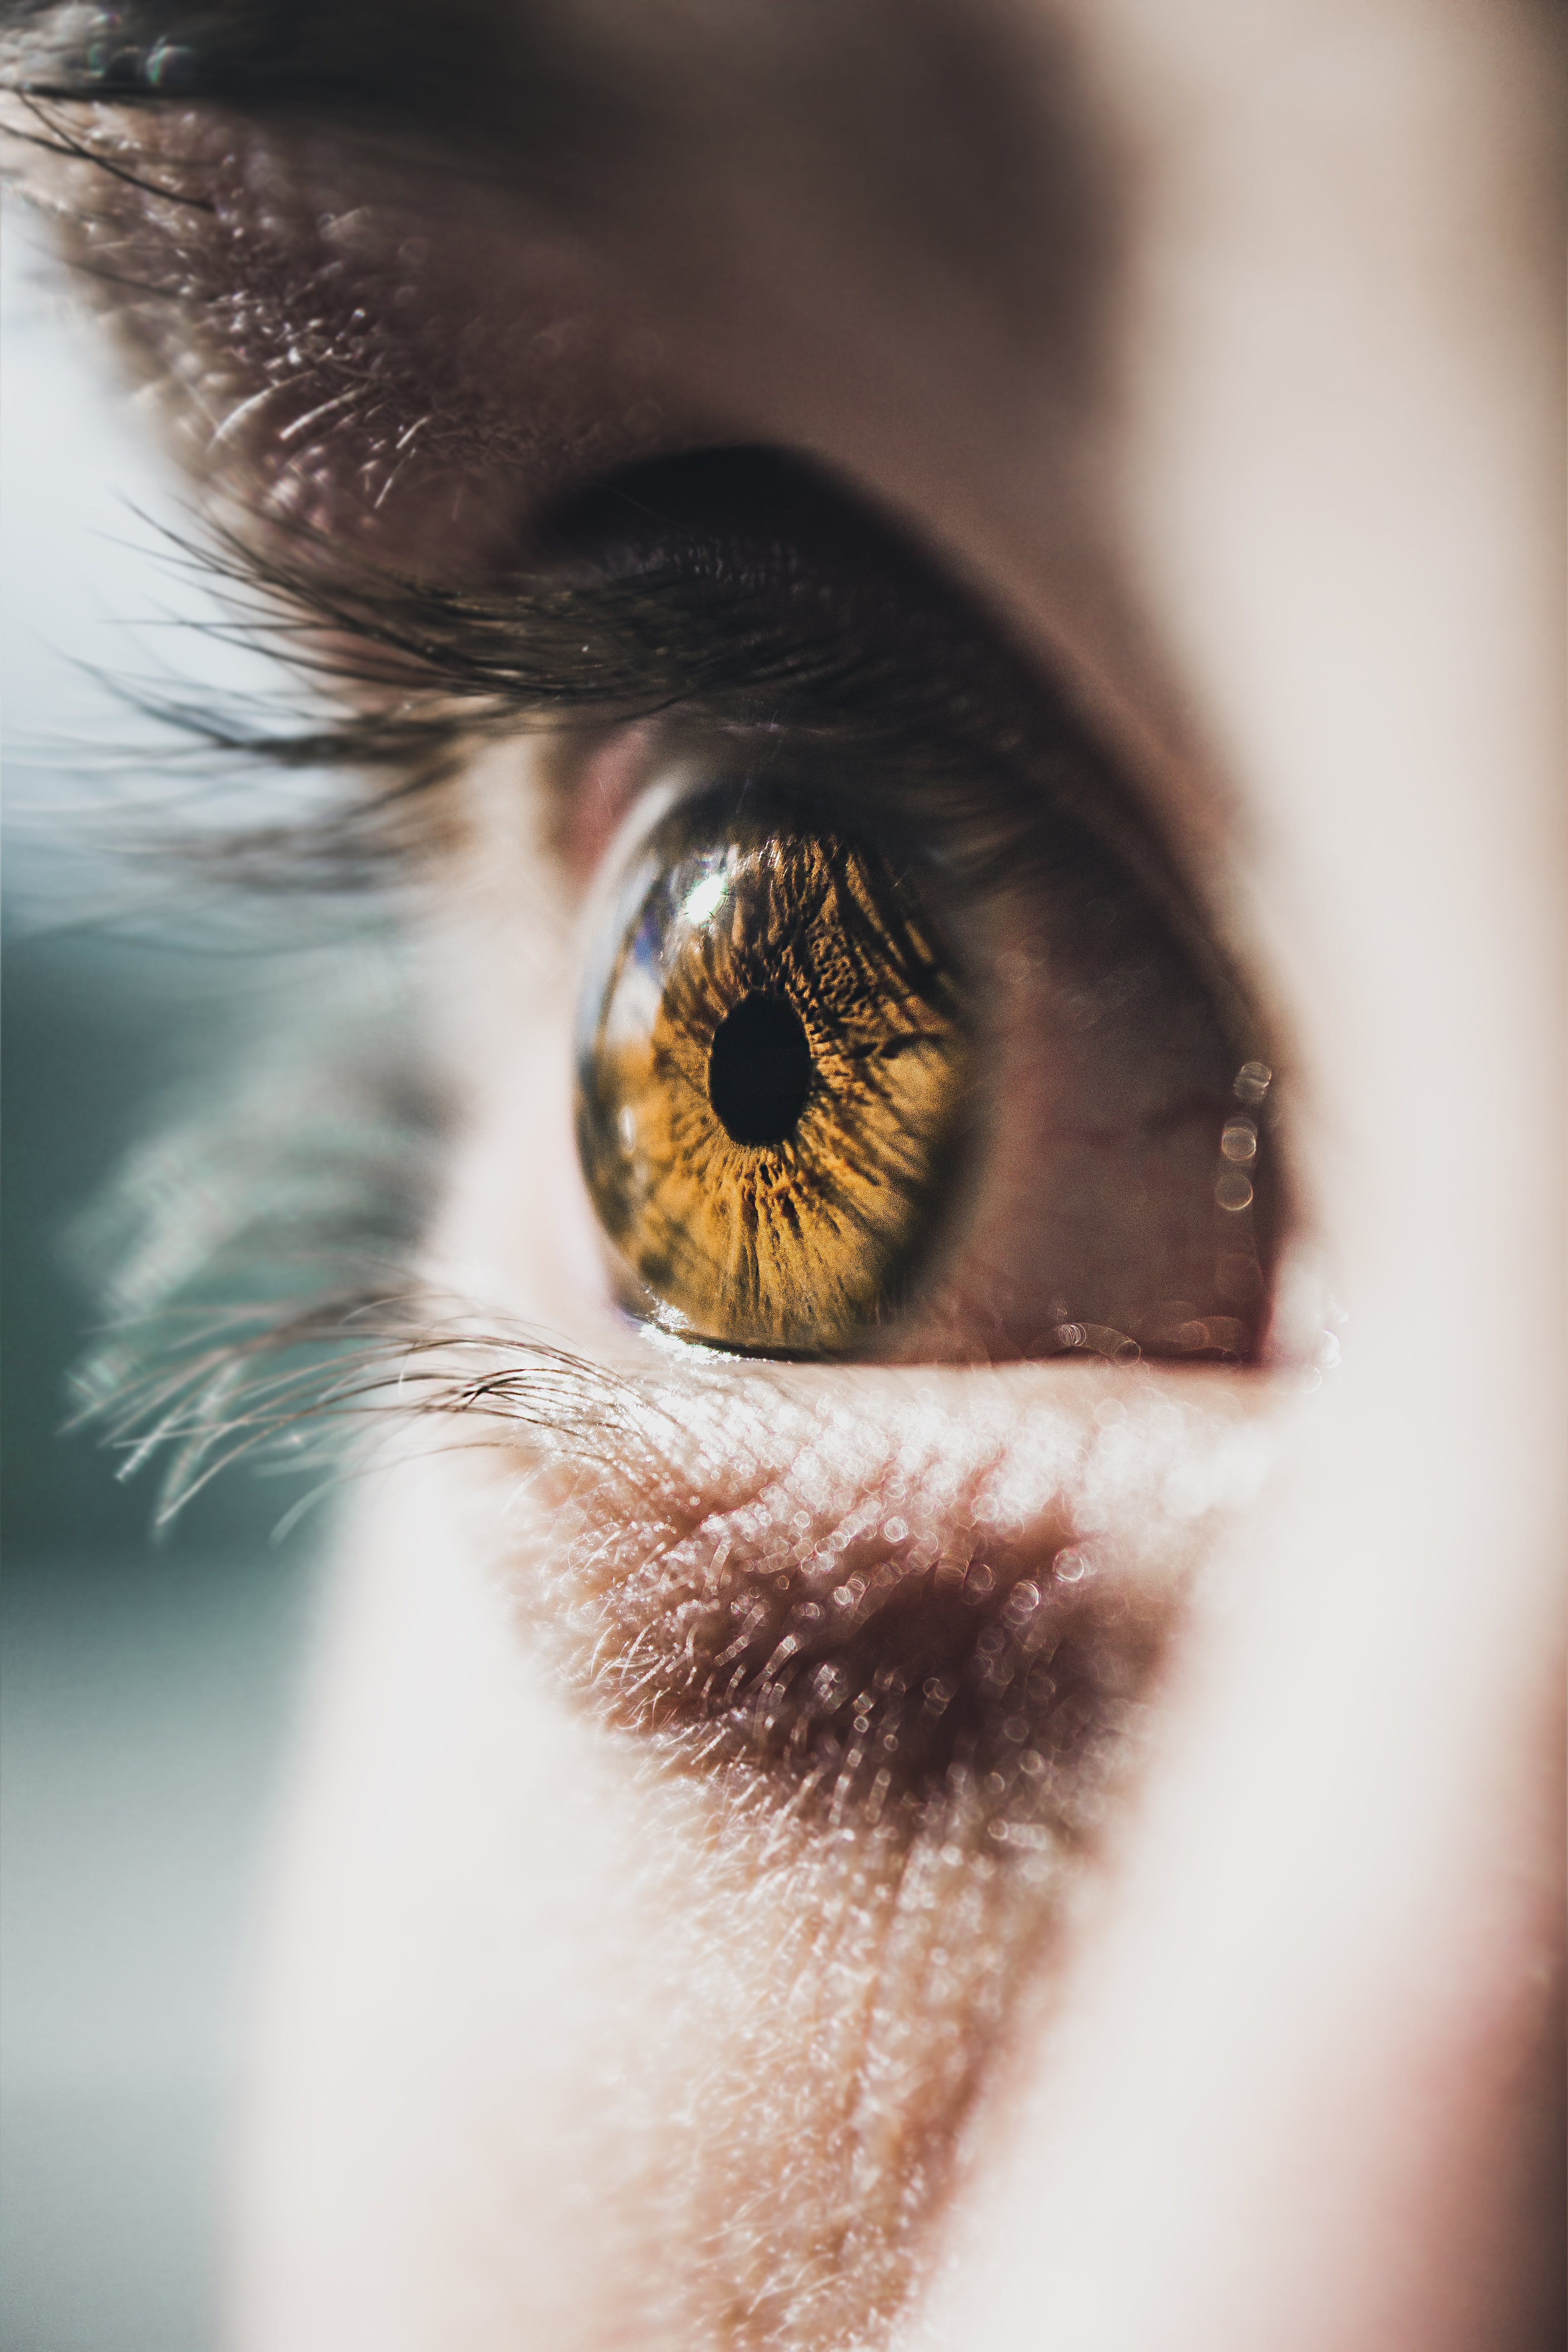 Close-Up Photo of Person's Eye